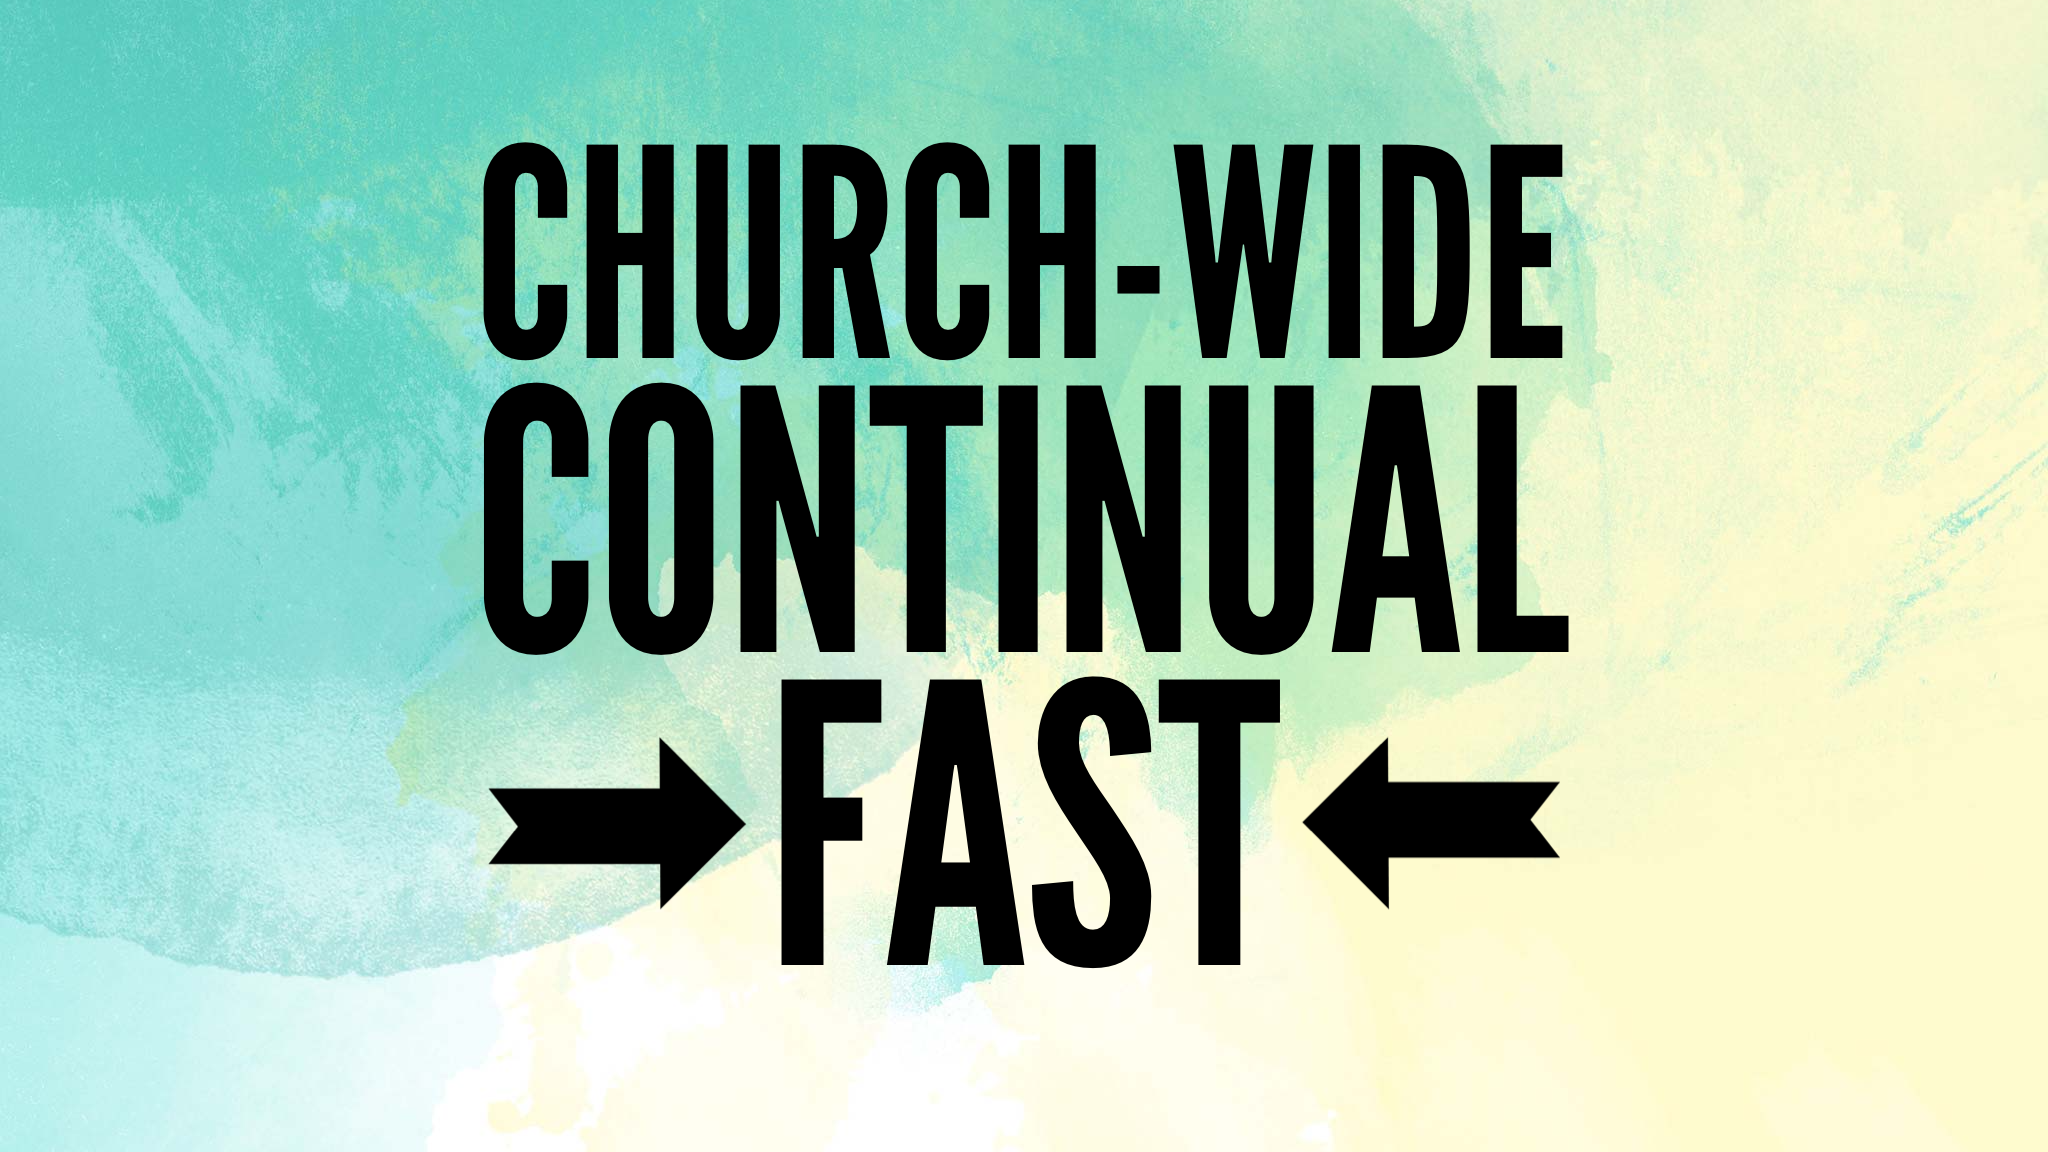 Join In on Our Church-wide Continual Fast!